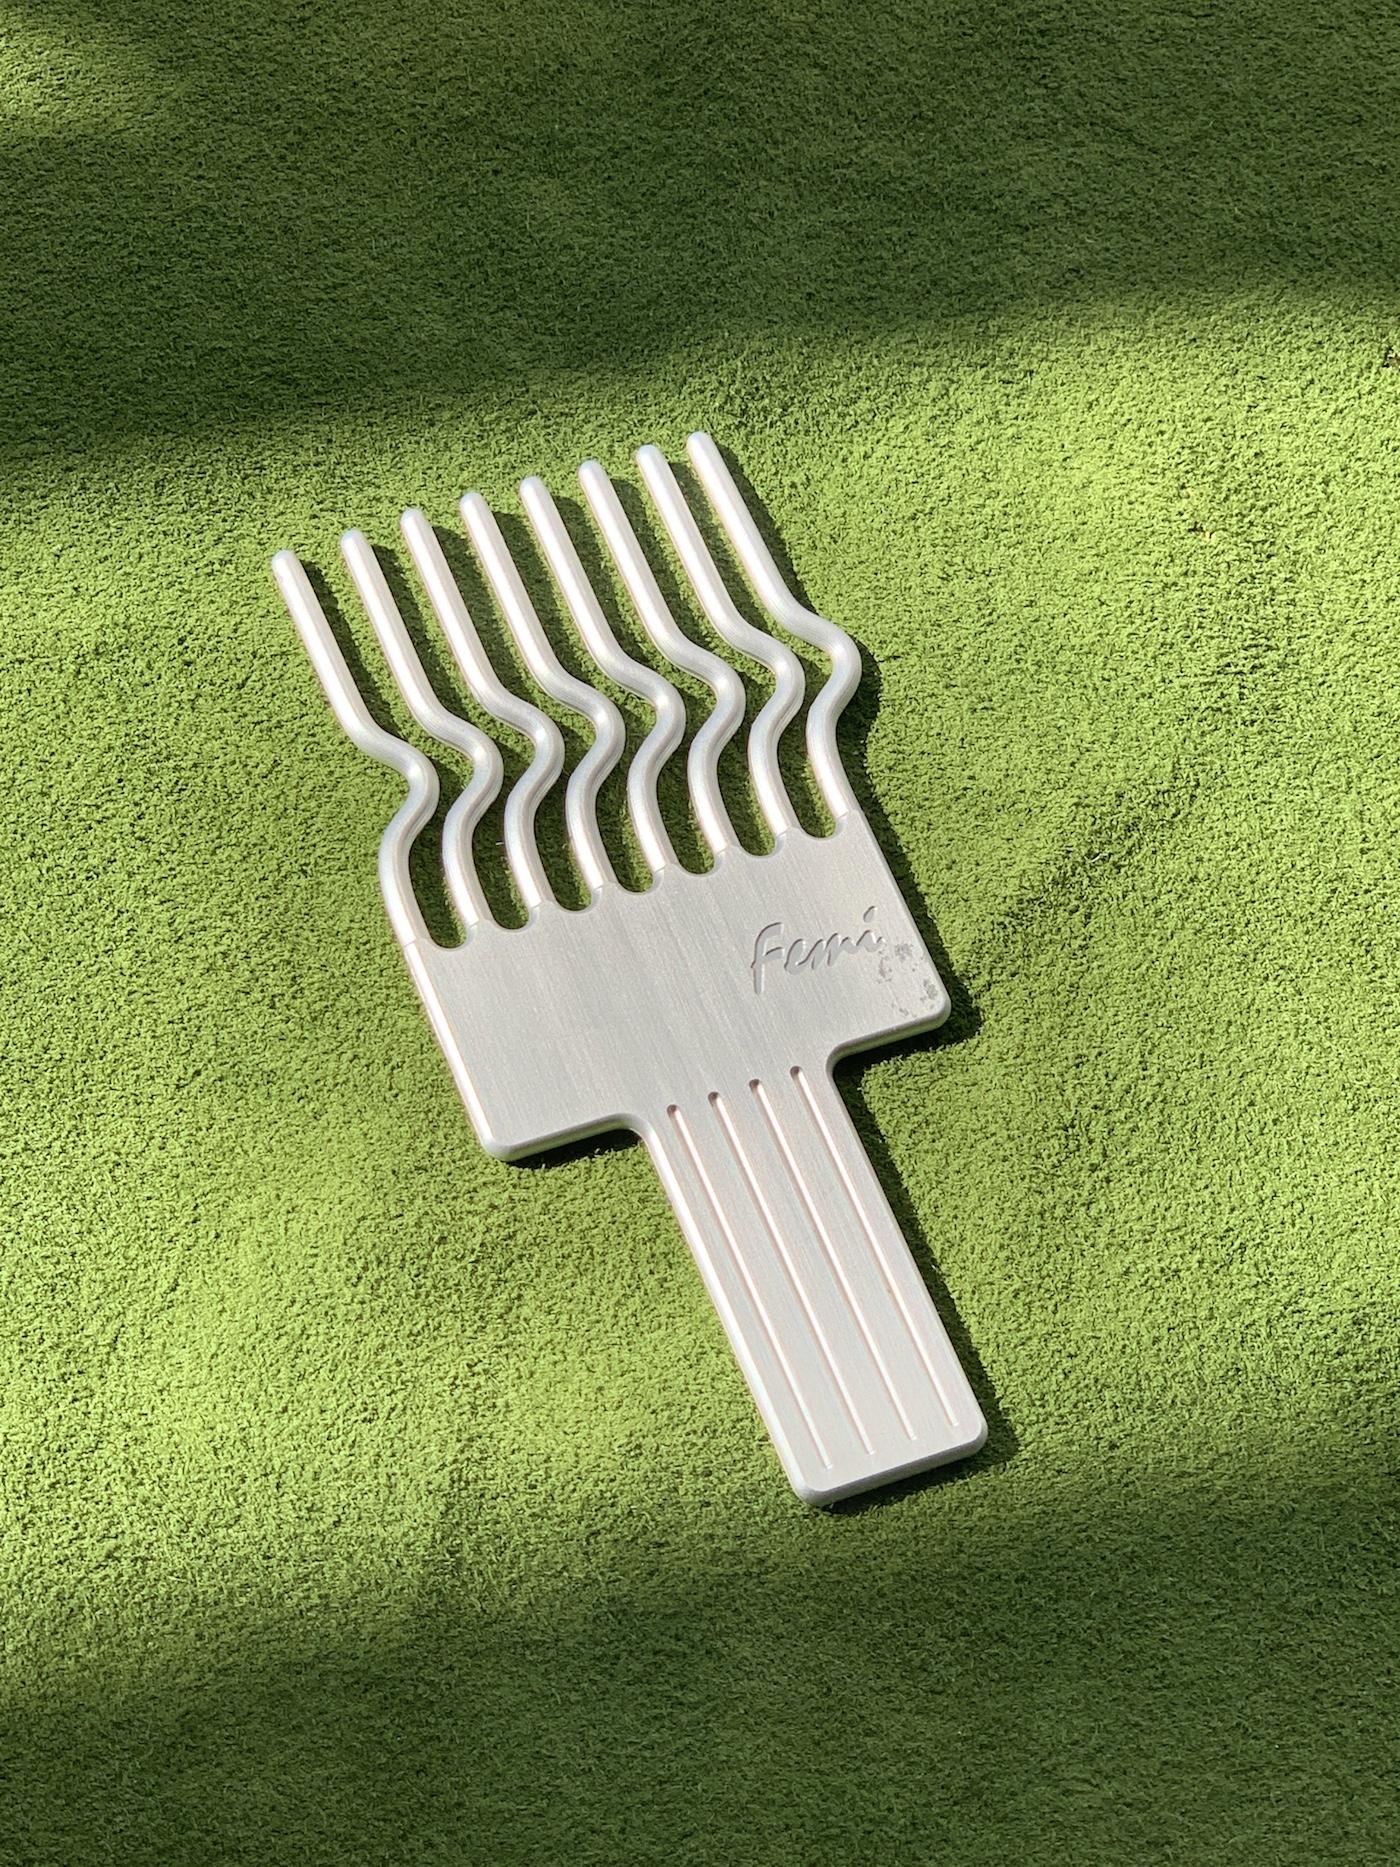 white afropick against a green background